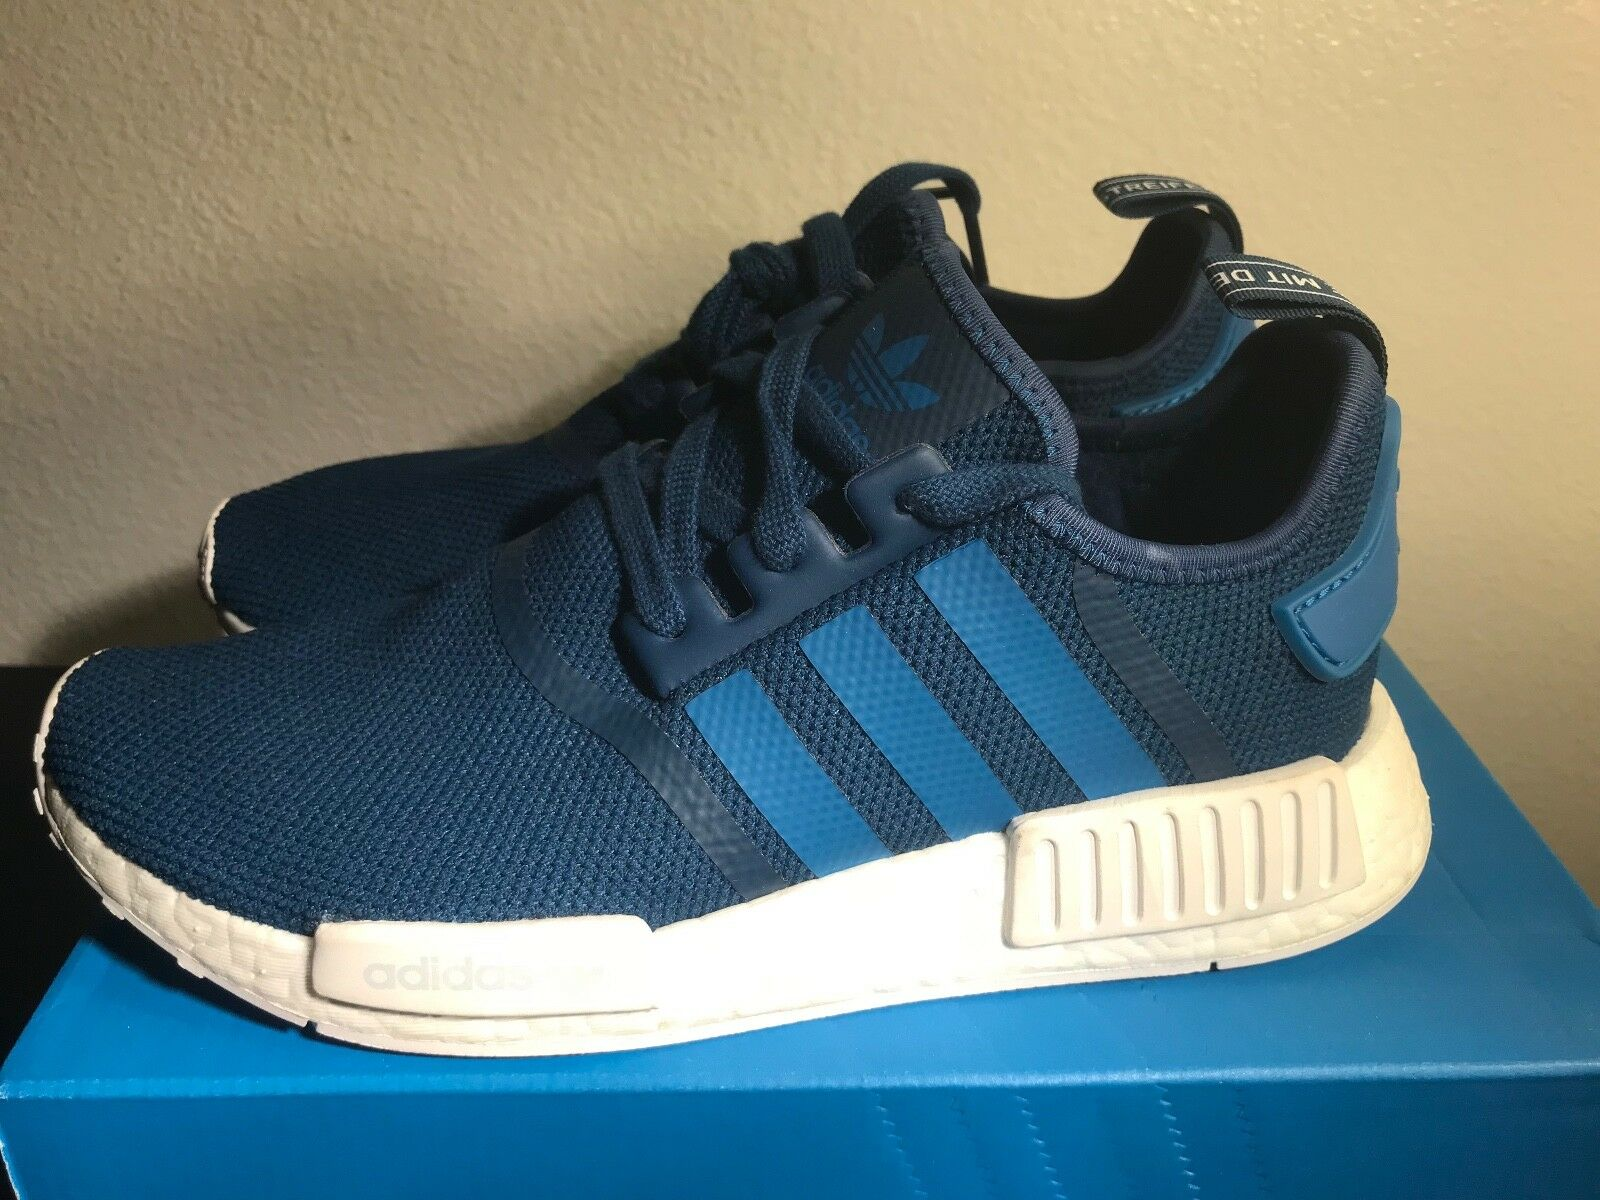 Adidas Orignals NMD_R1 S31502 Men Size 8.5 Royal bluee White DS Authentic